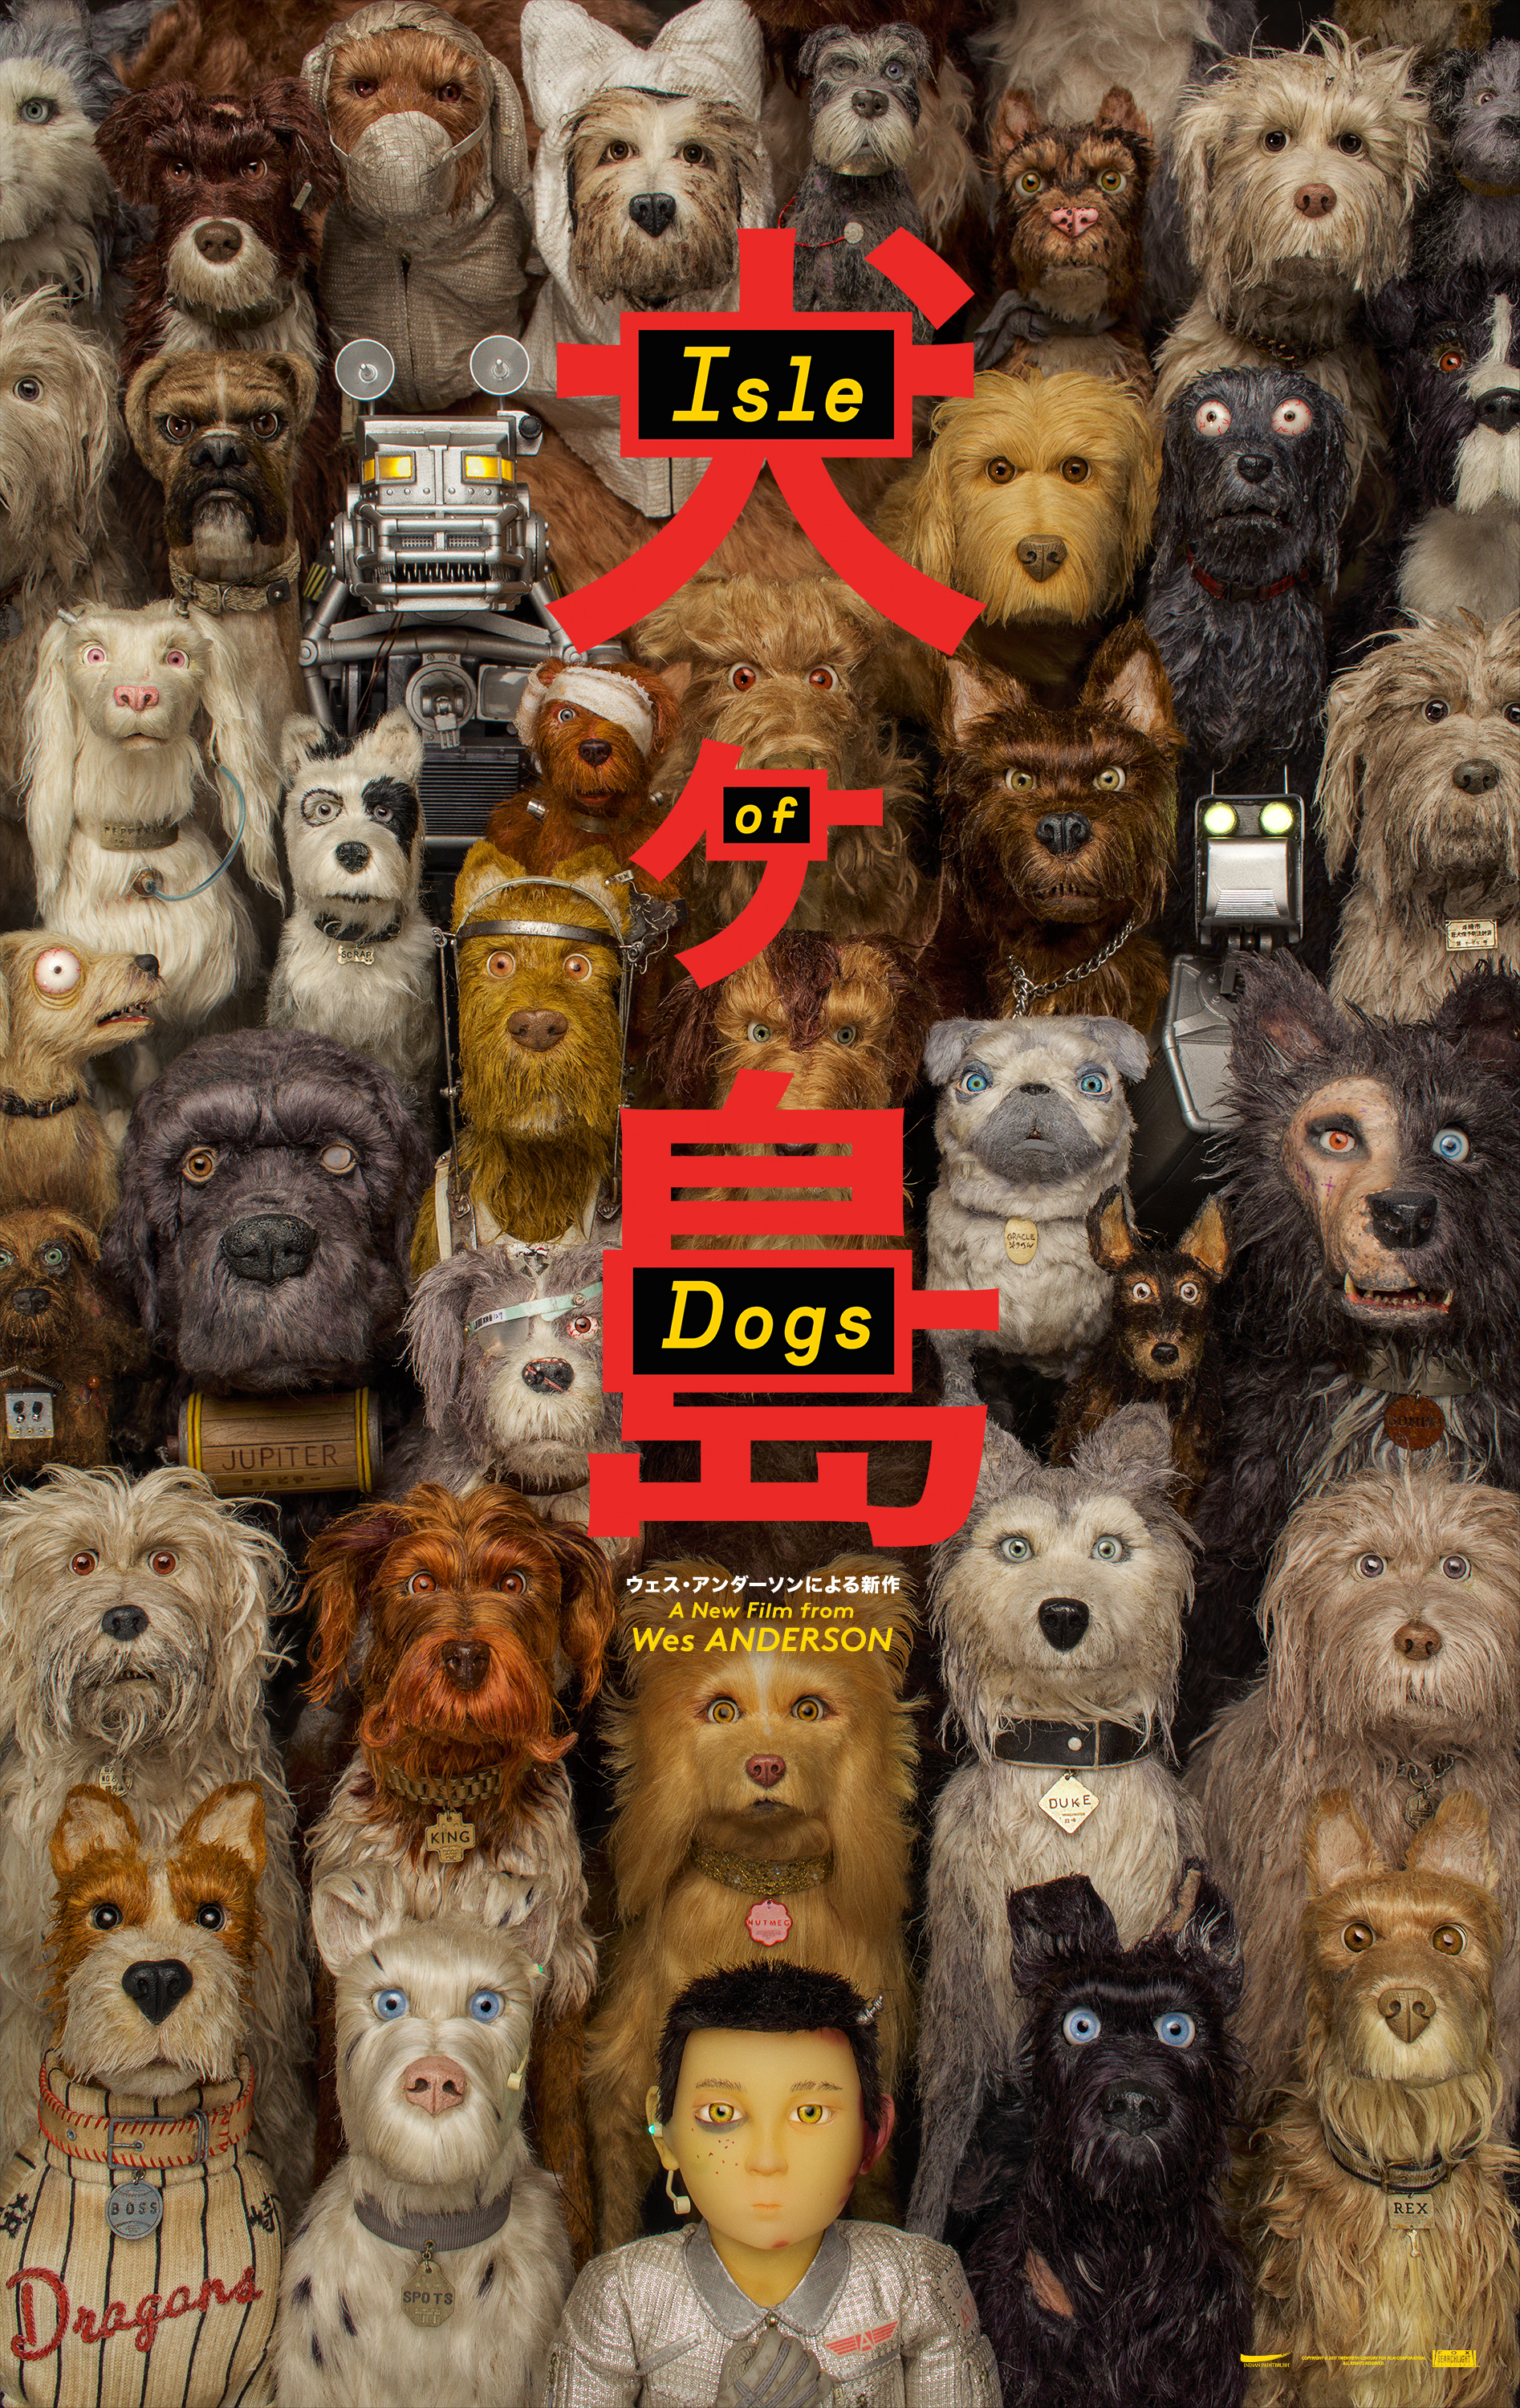 Isle Of Dogs film review: Wes Anderson's stop-motion tale is full of charm and invention